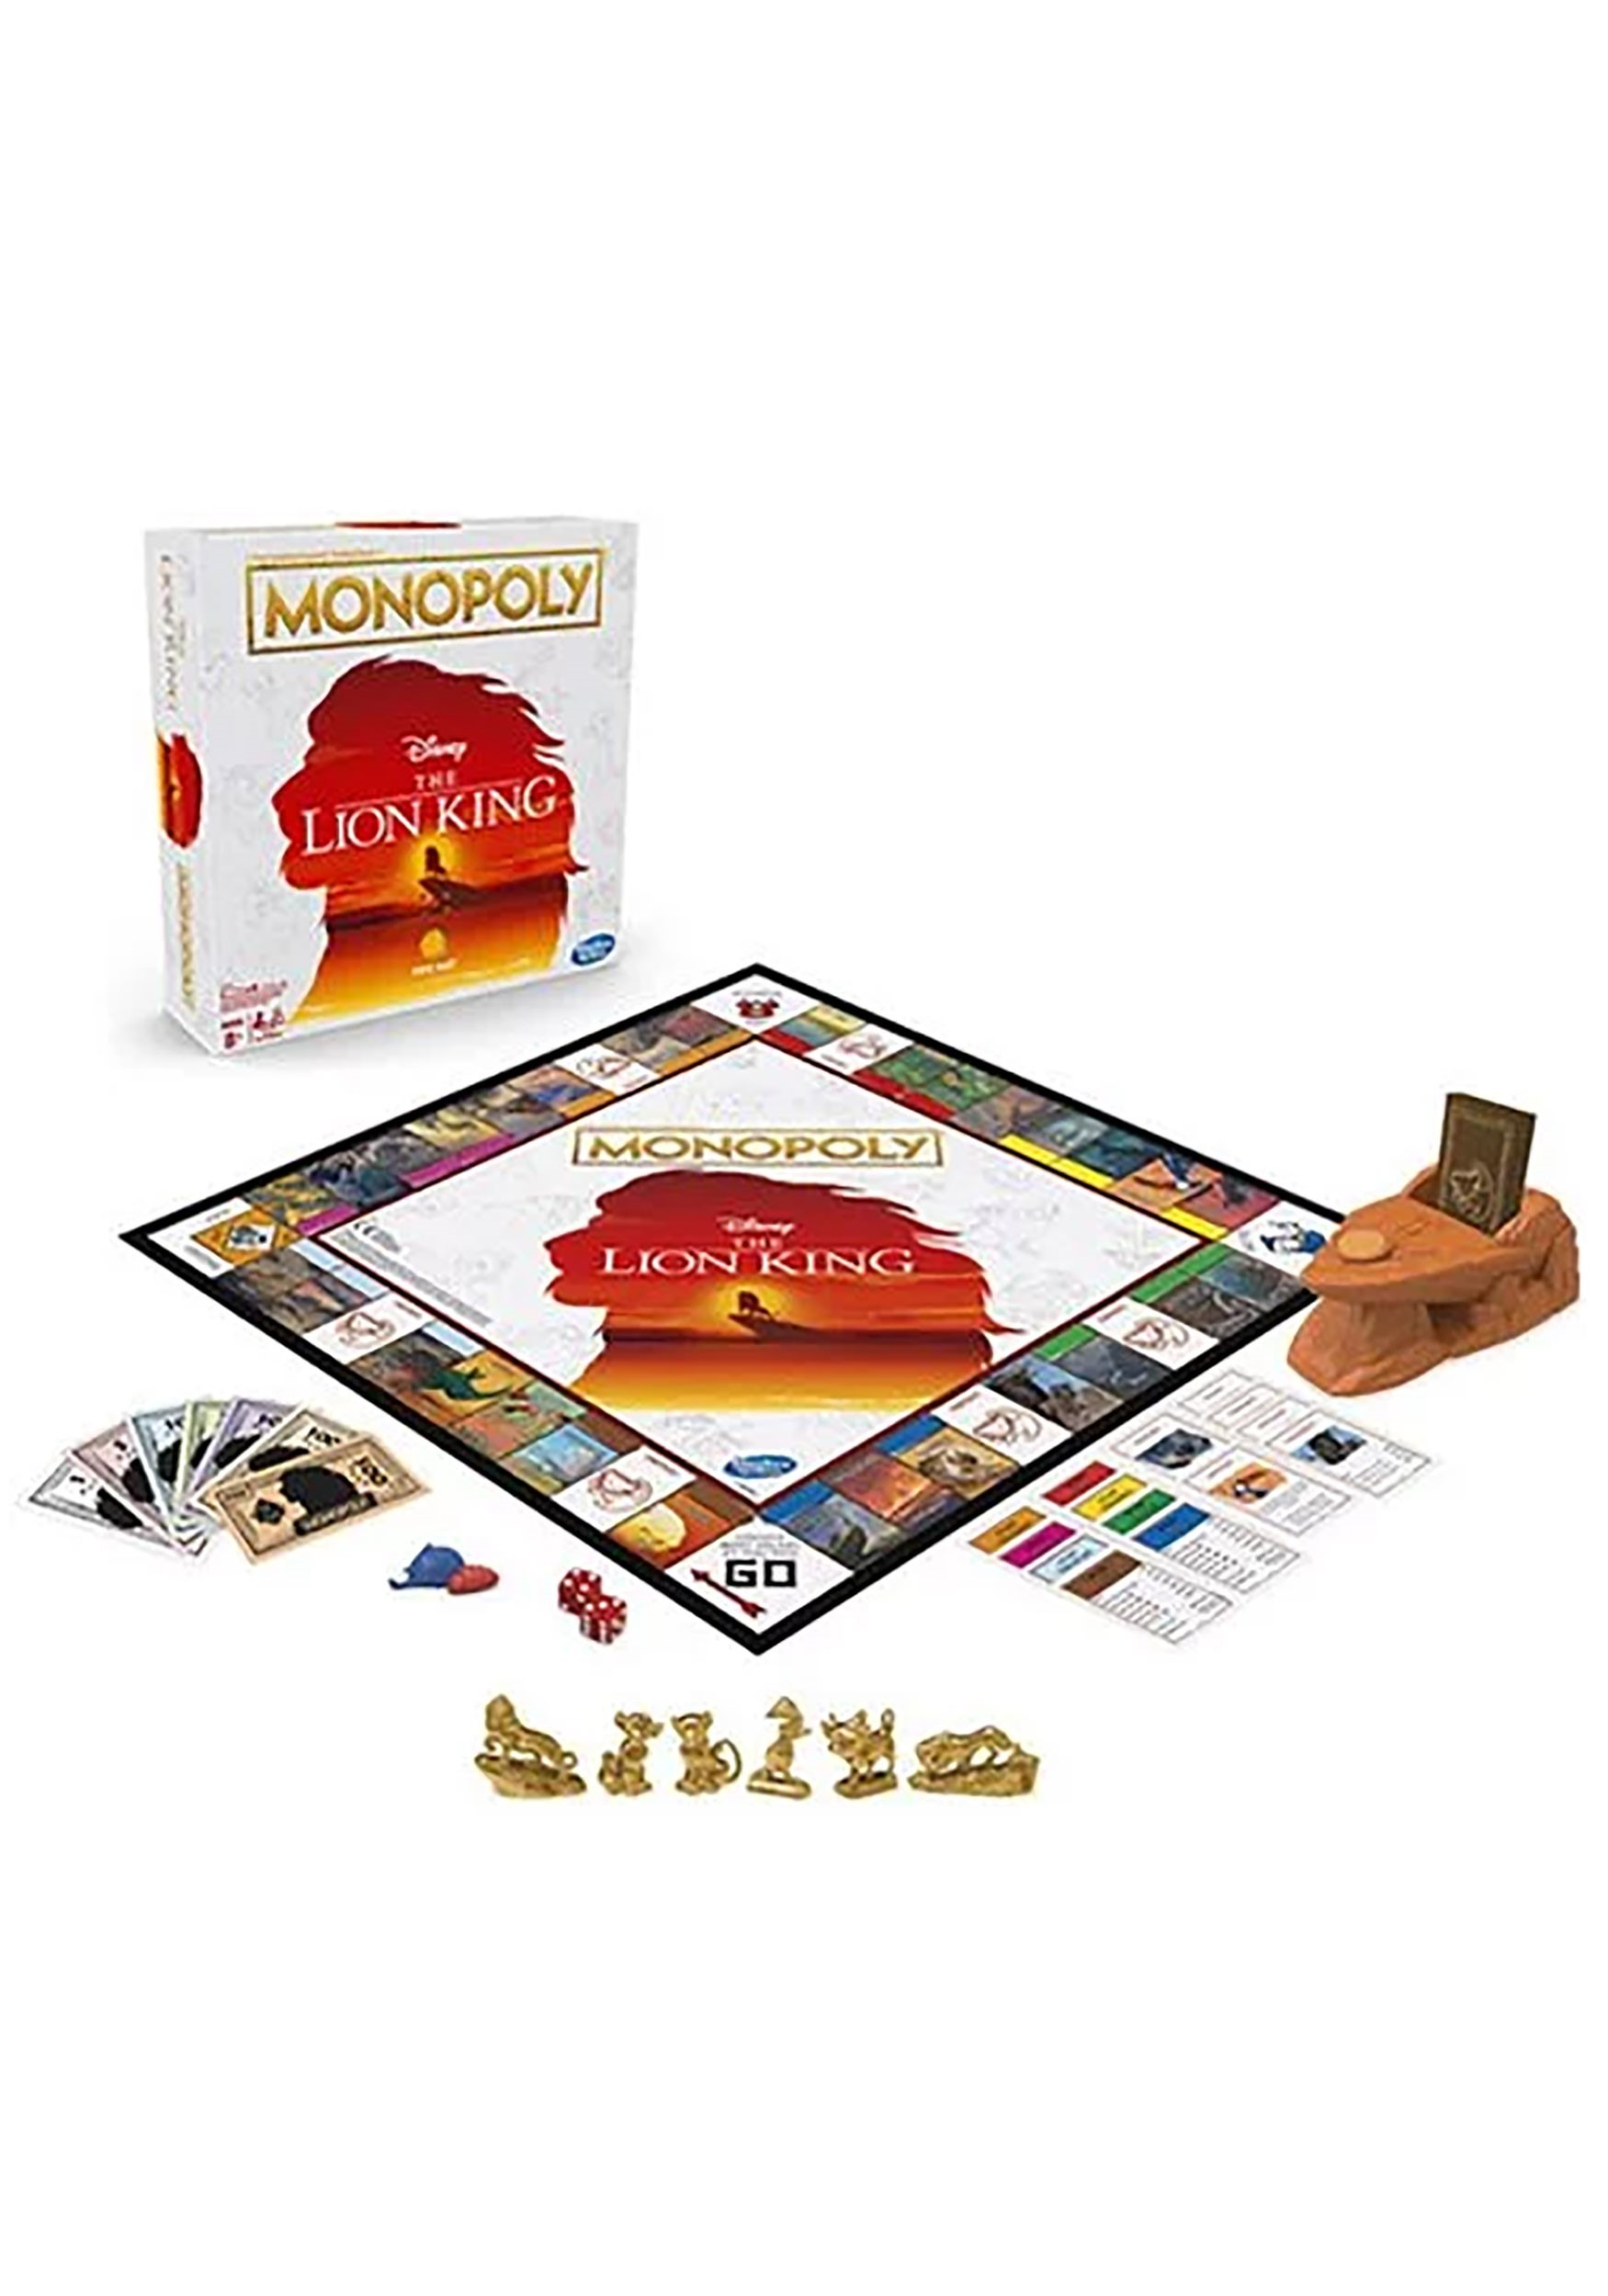 Monopoly Game: The Lion King Edition